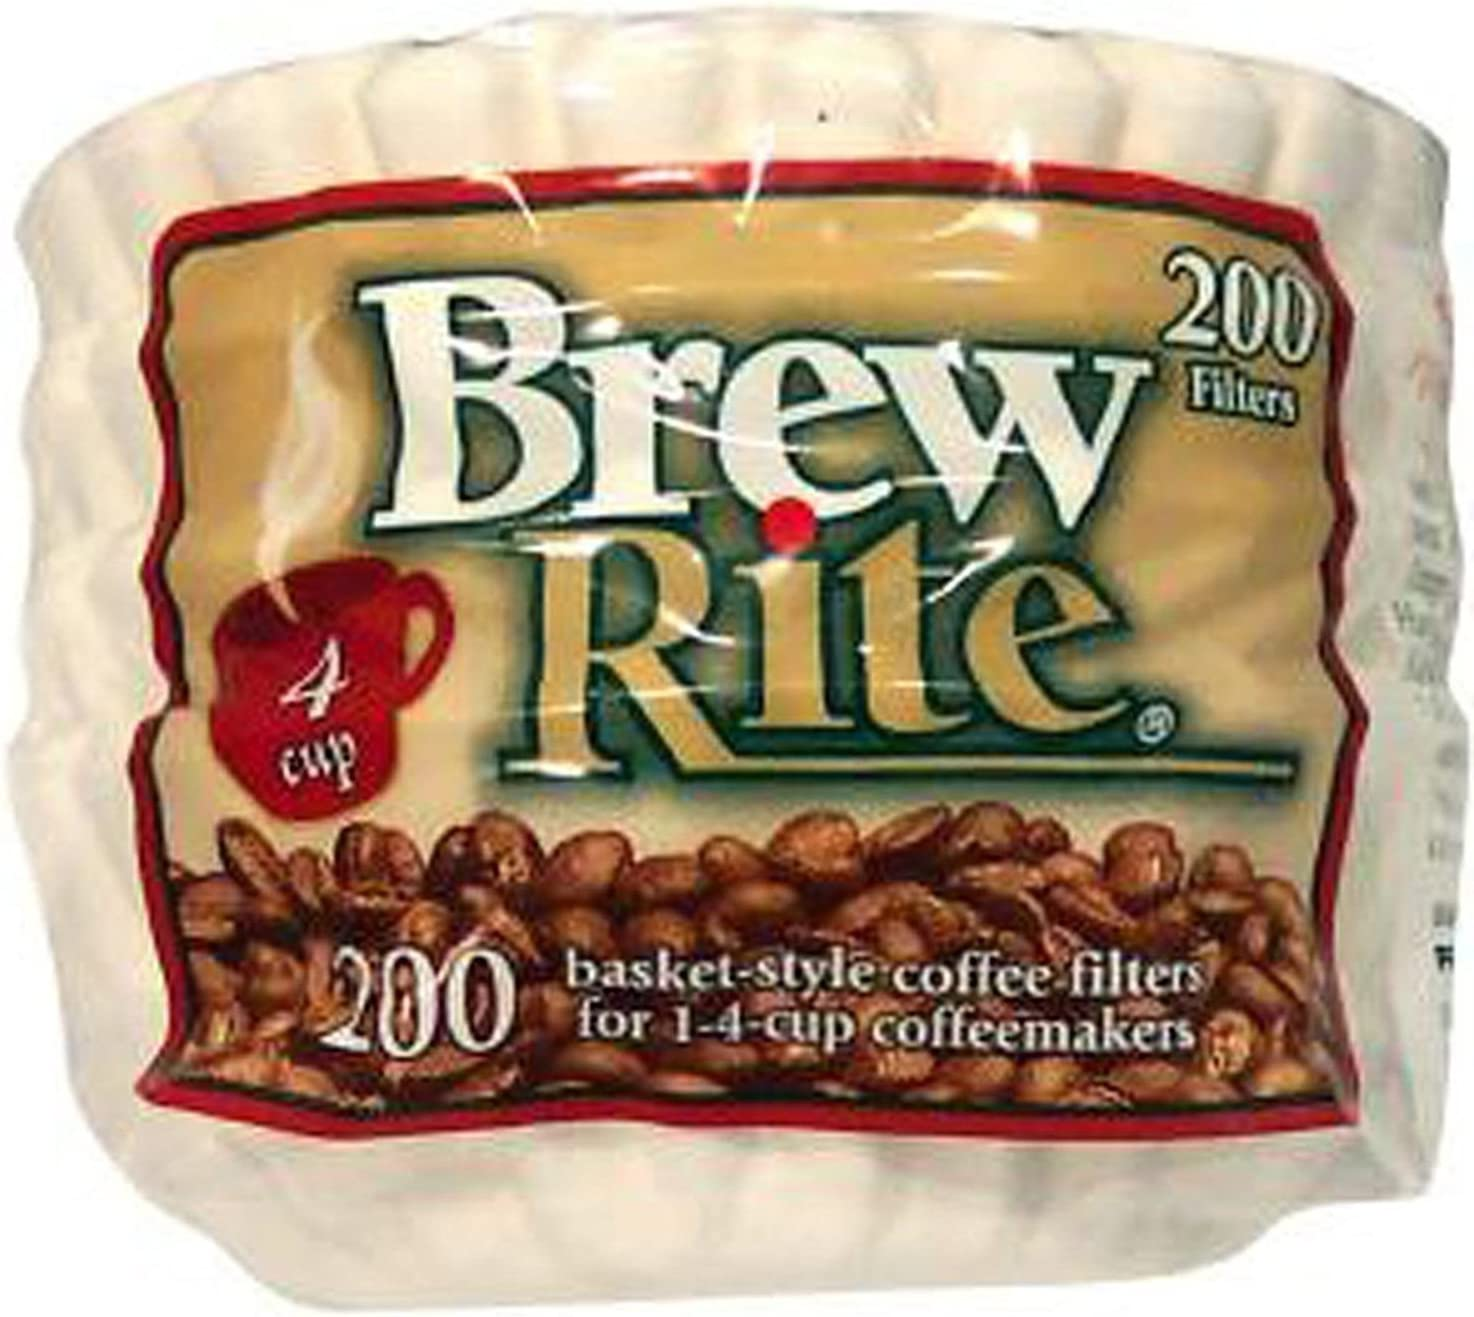 Brew Rite Nein 4 Cup Coffee Basket Disposable Filters 200 c (White)